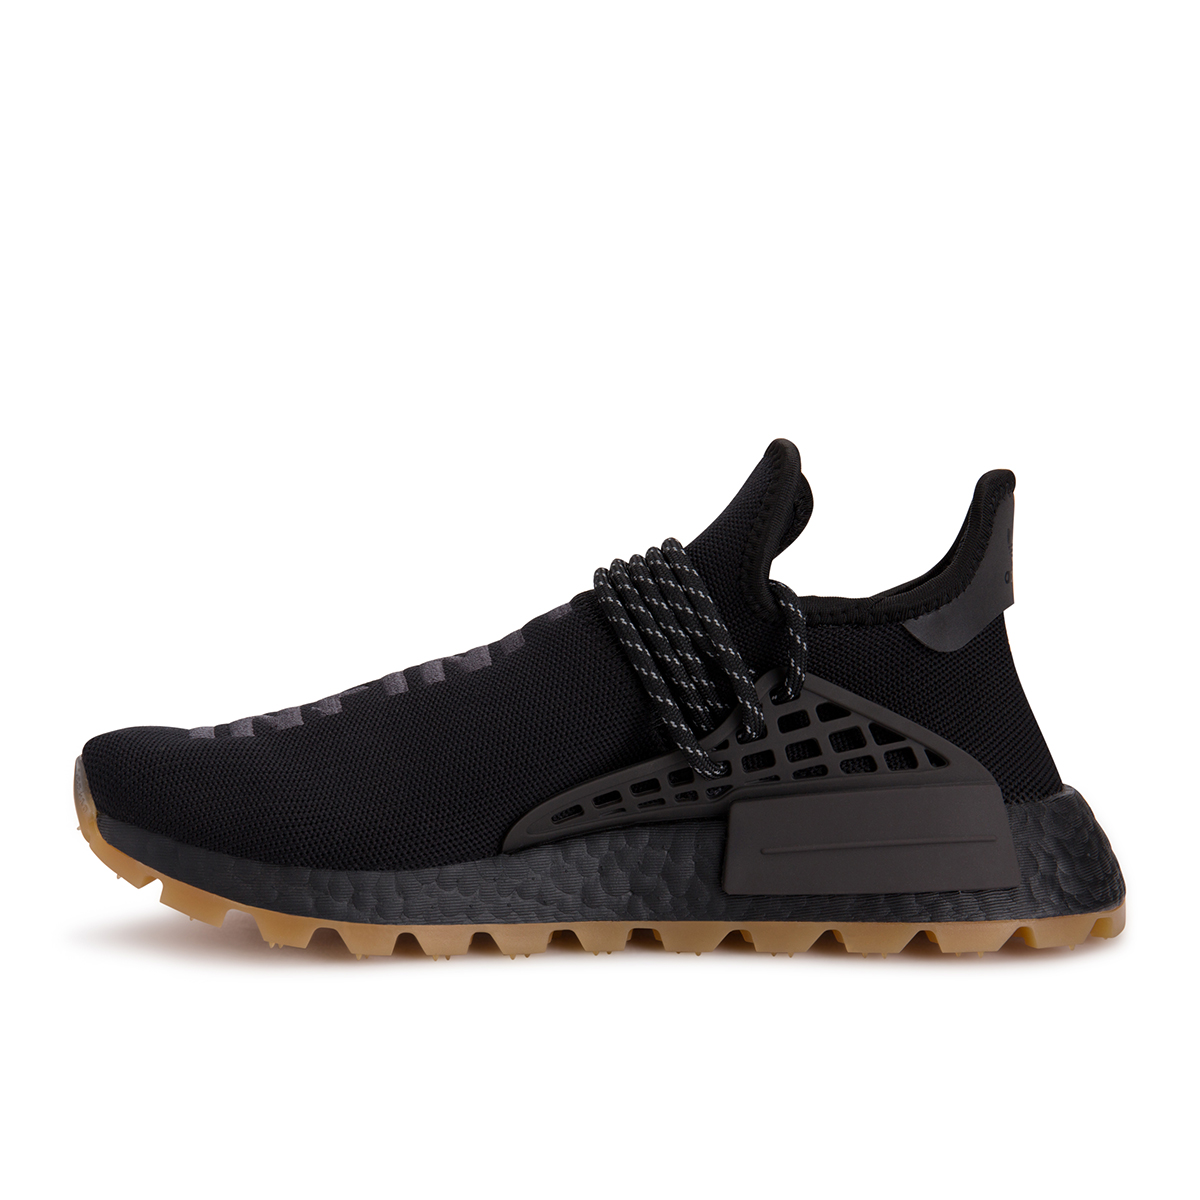 adidas Pharrell Williams adidas Human Race NMD , Men\u0027s/Women\u0027s Shoes